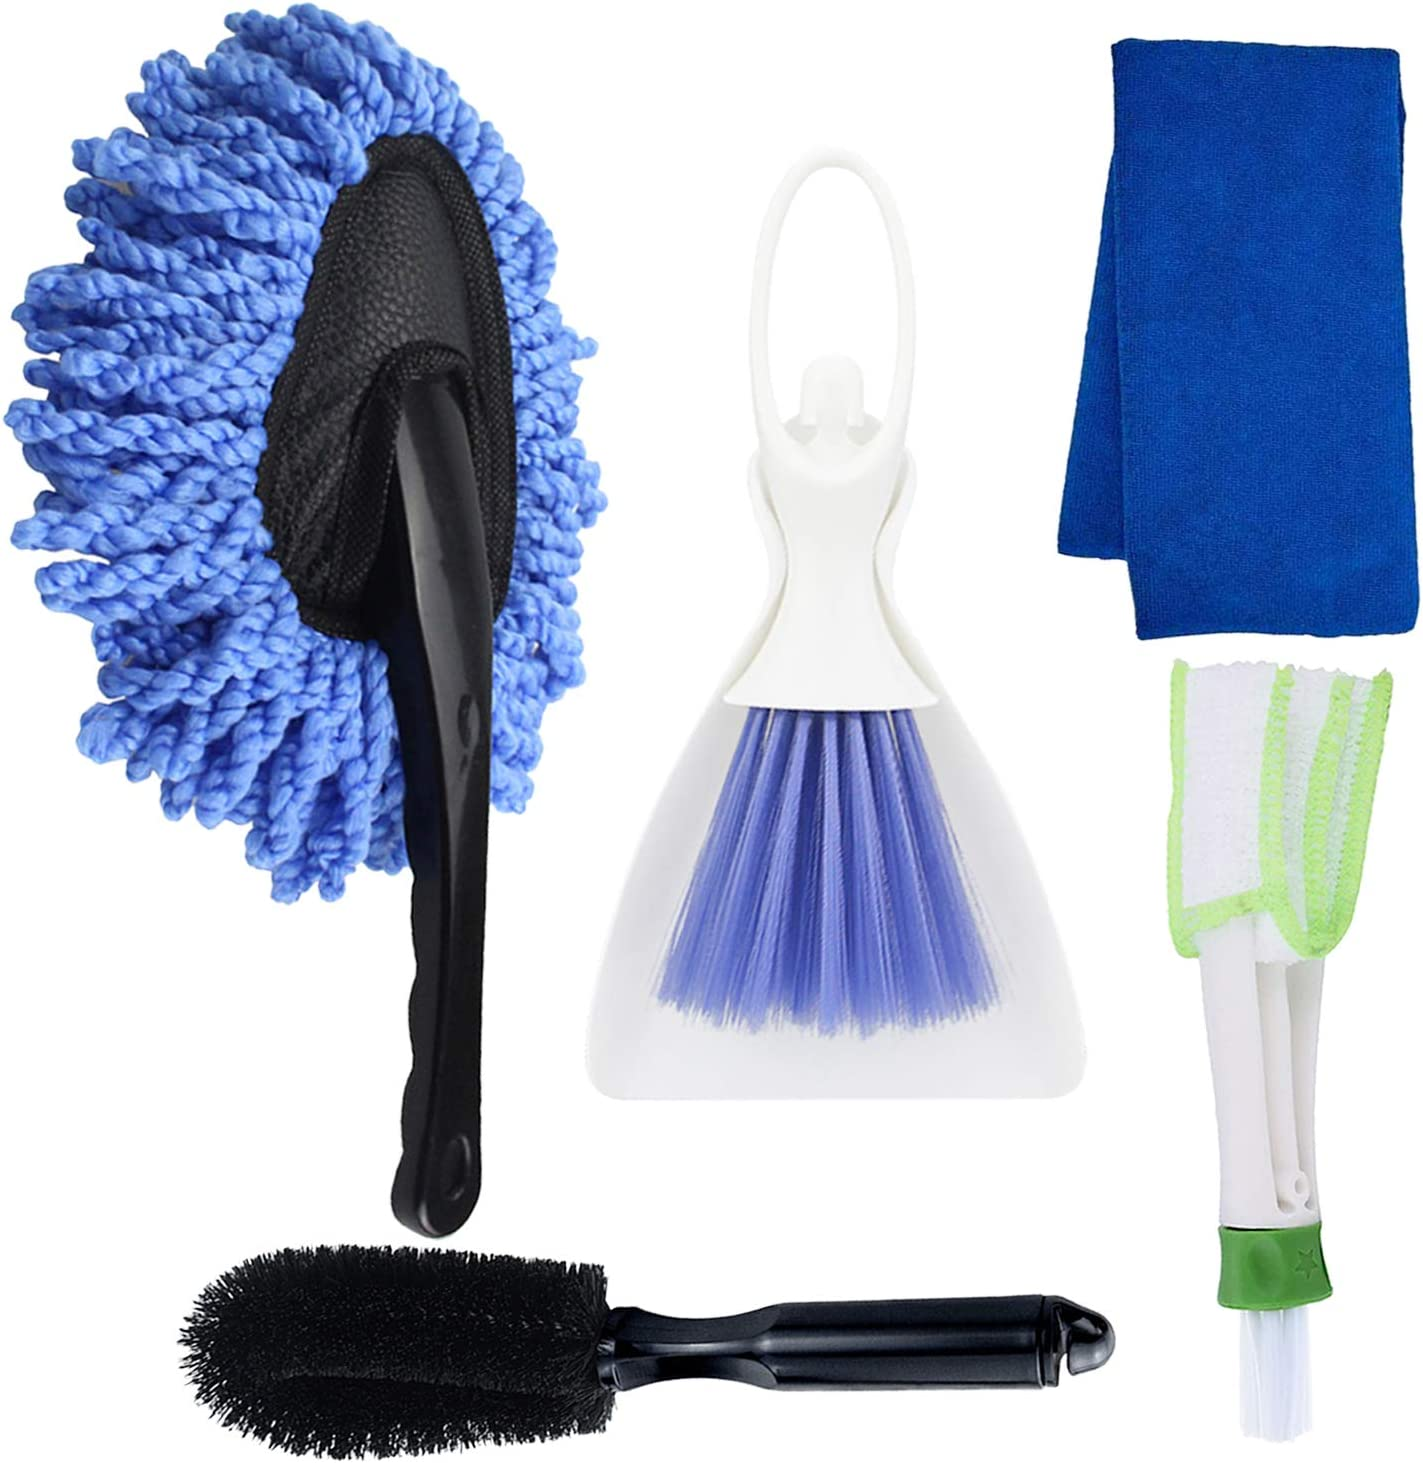 5 Pack Car Cleaning Tools Kit,Car Wash Tools Kit (with Car Wash Brush,Microfiber Cleaning Cloth,Mini Duster for Car Air Vent,Cleaning Brush Dusting Tool,Tire Brush)for Car Home Kitchen Cleaning